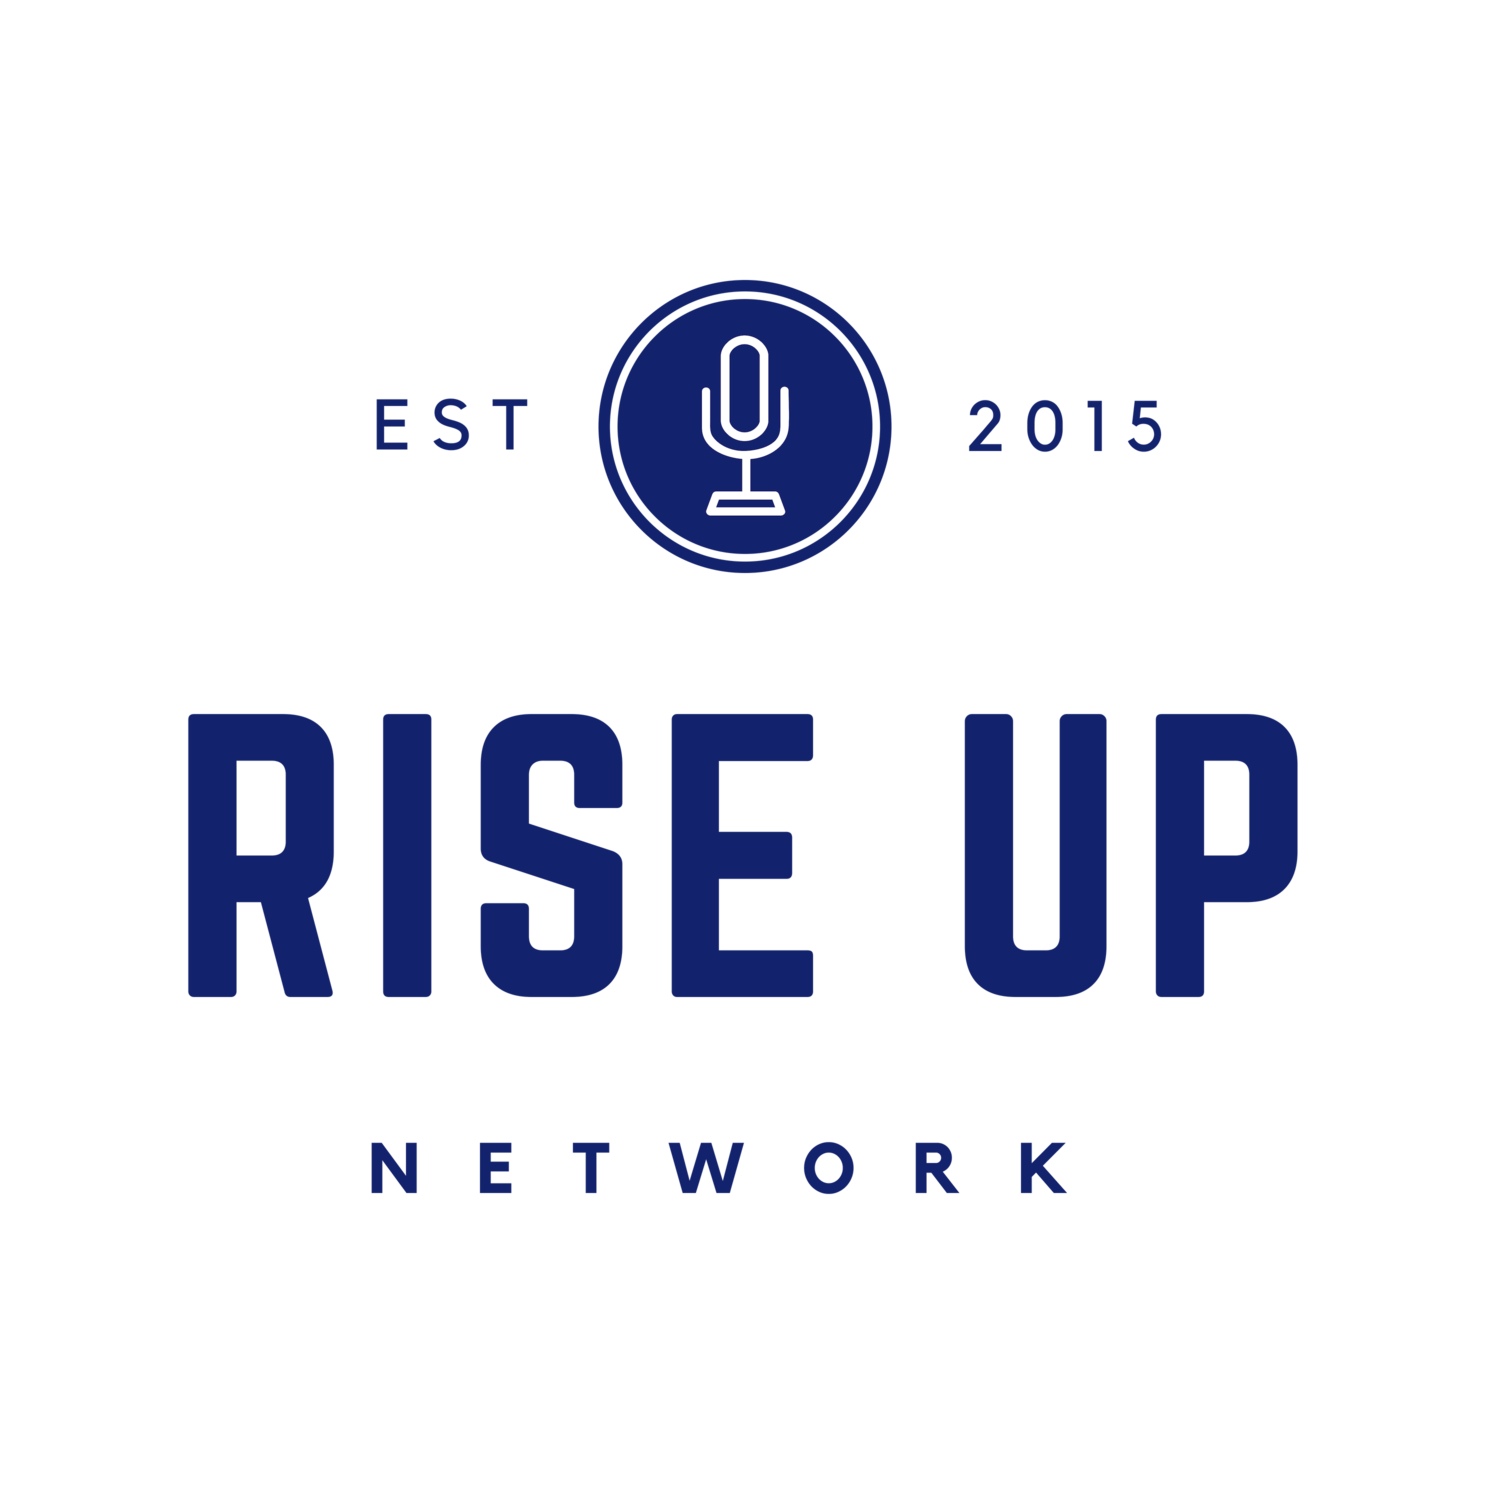 Rise Up Network